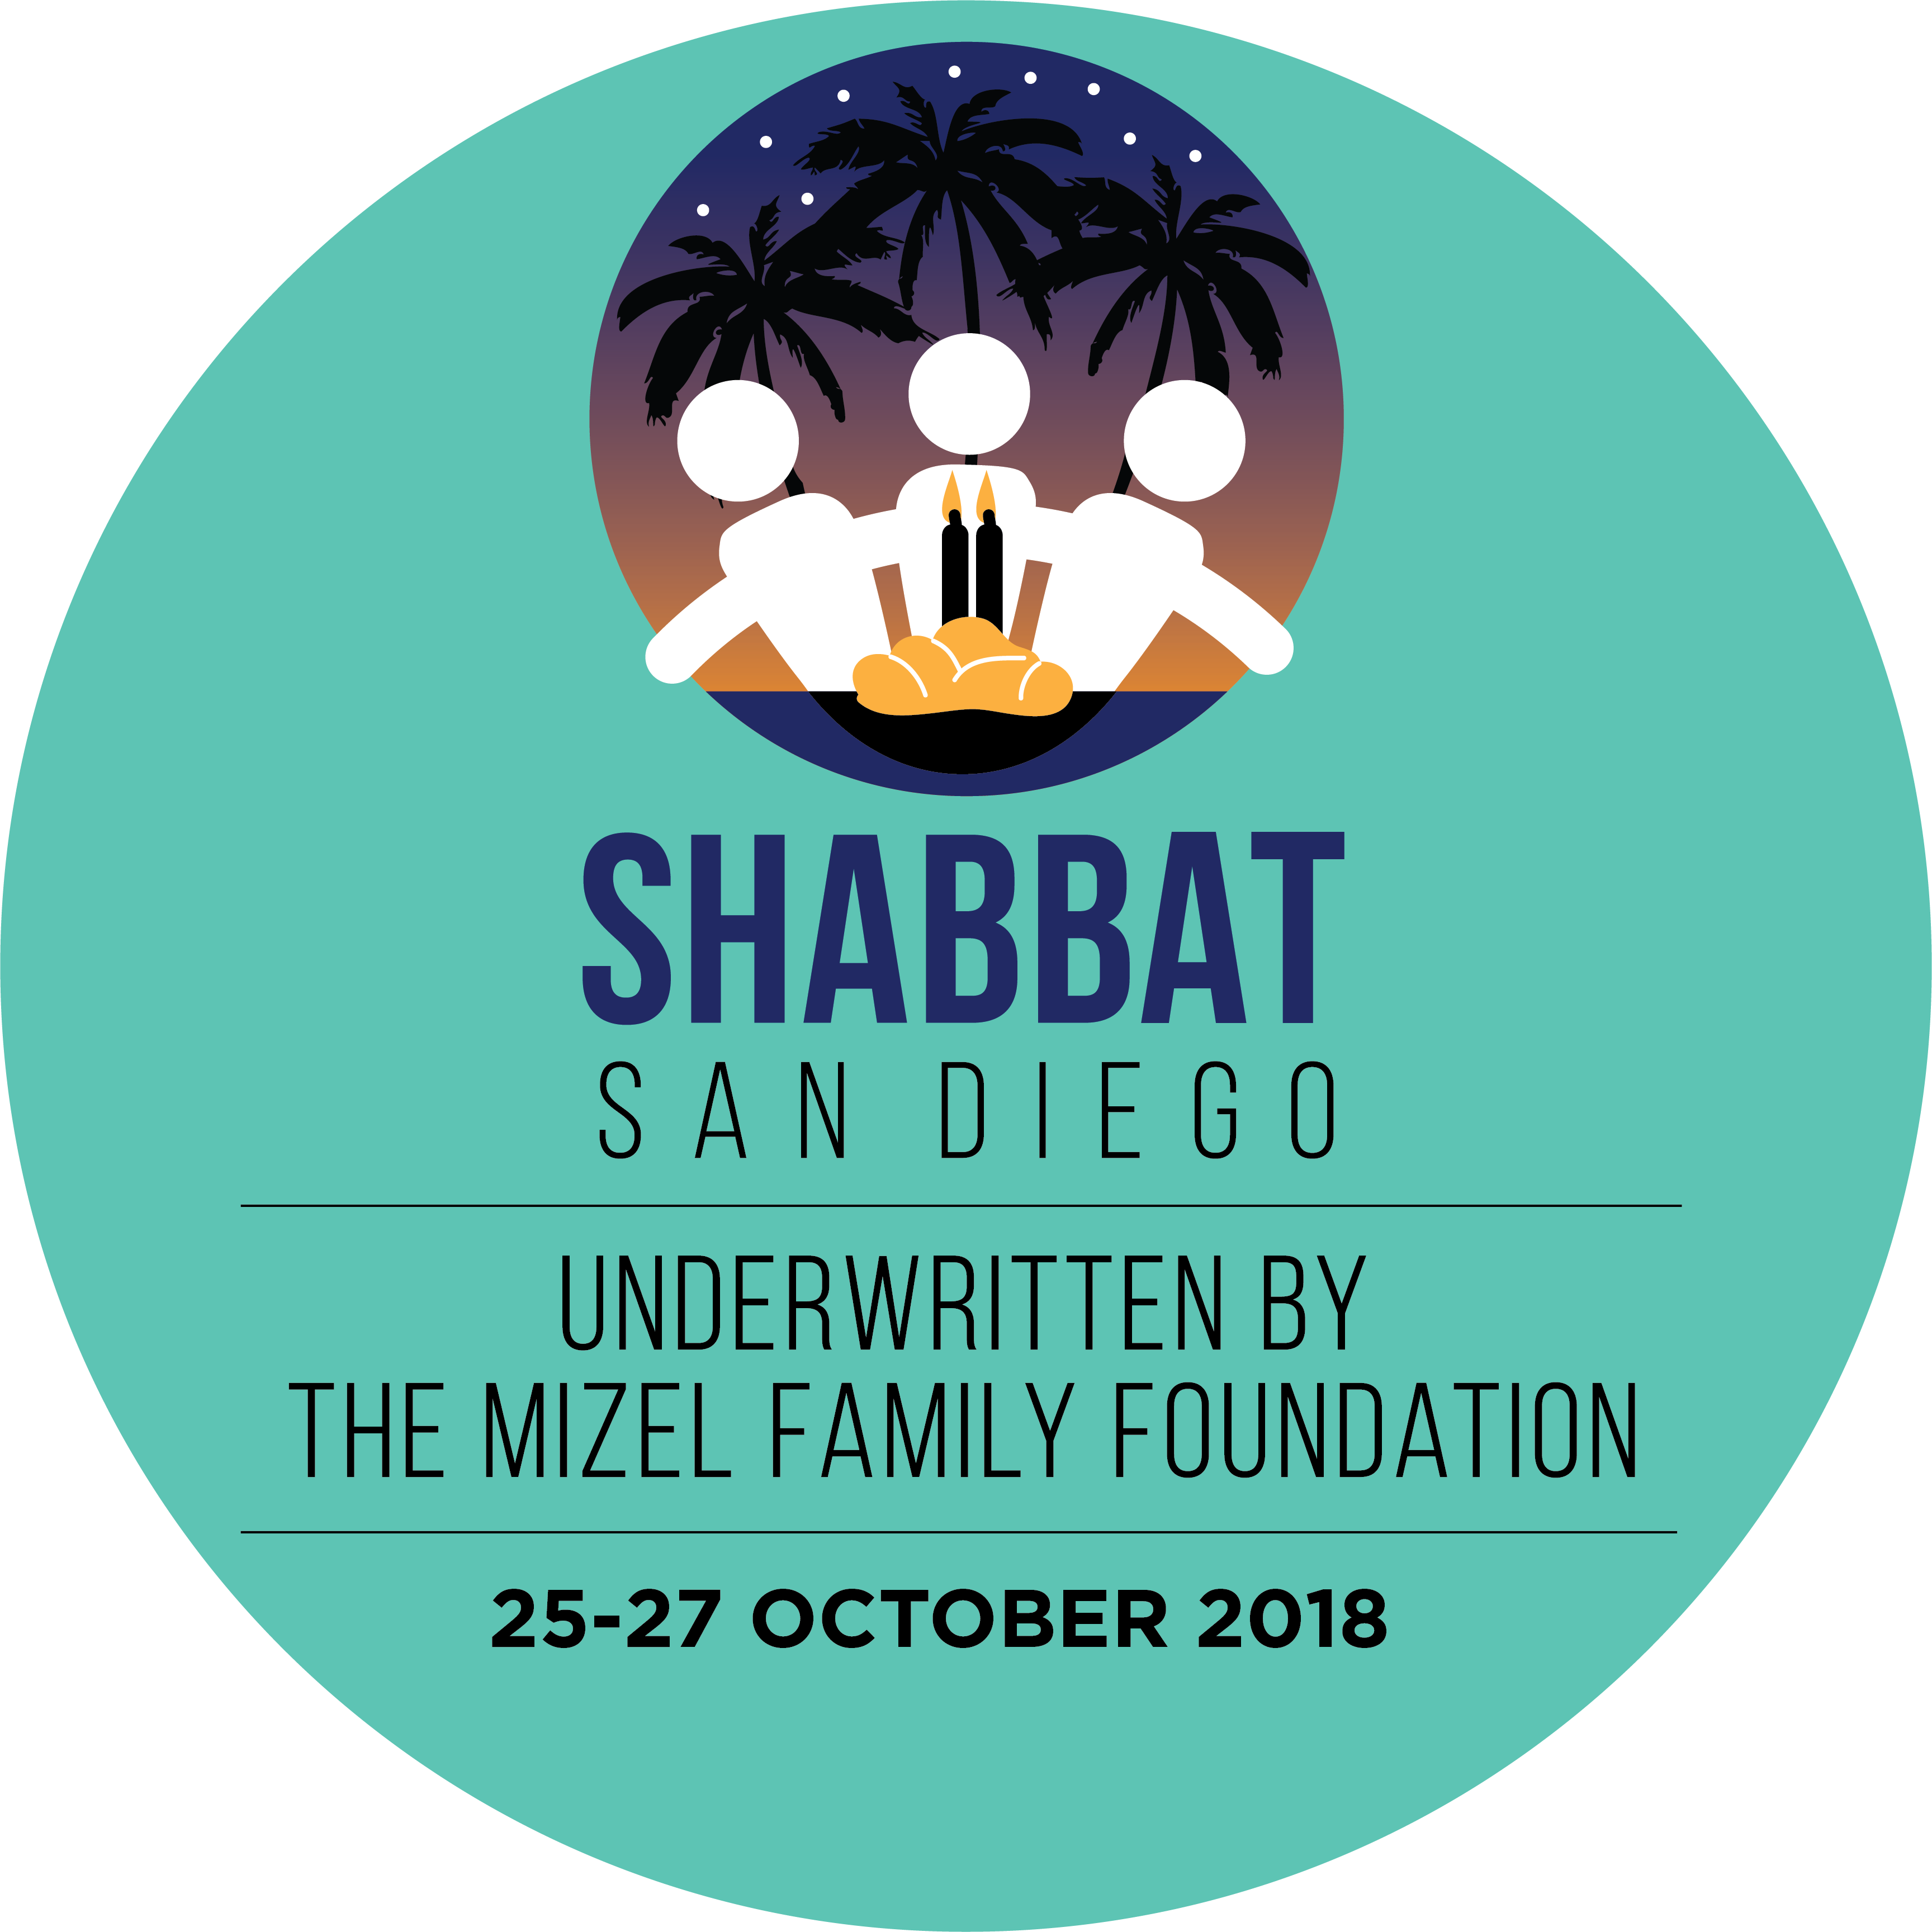 Shabbat San Diego – Underwritten by the Mizel Family Foundation